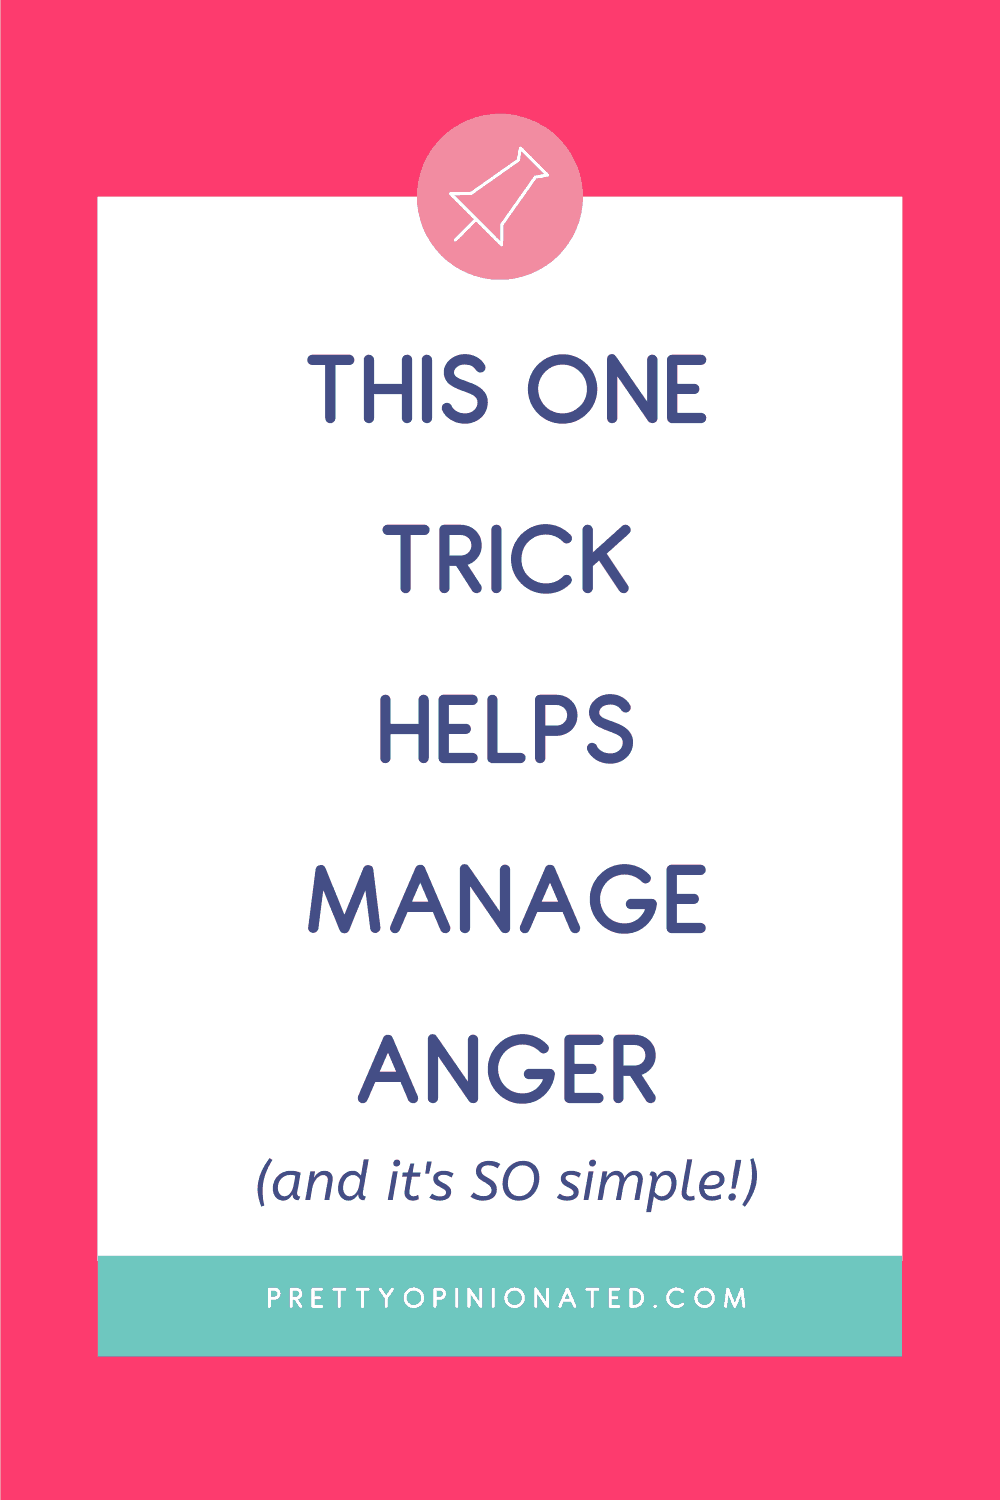 Anger wreaks havoc on your health, not to mention your relationships! I used to be mad all the time, but this little anger management trick really helped me learn to control it. Check it out!